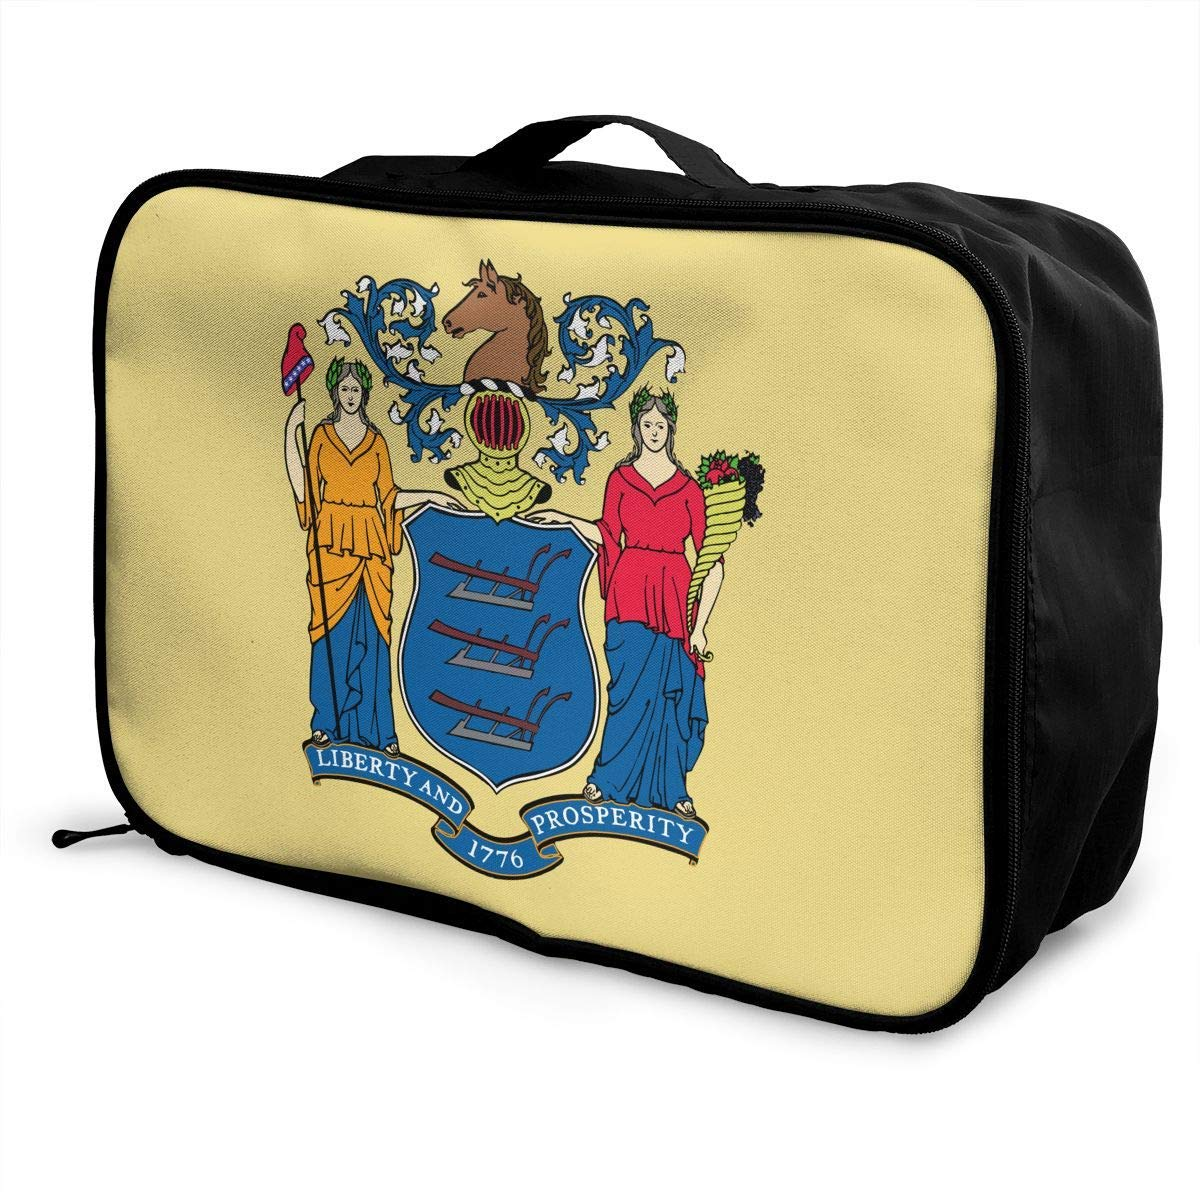 Portable Luggage Duffel Bag New Jersey Flag Travel Bags Carry-on In Trolley Handle